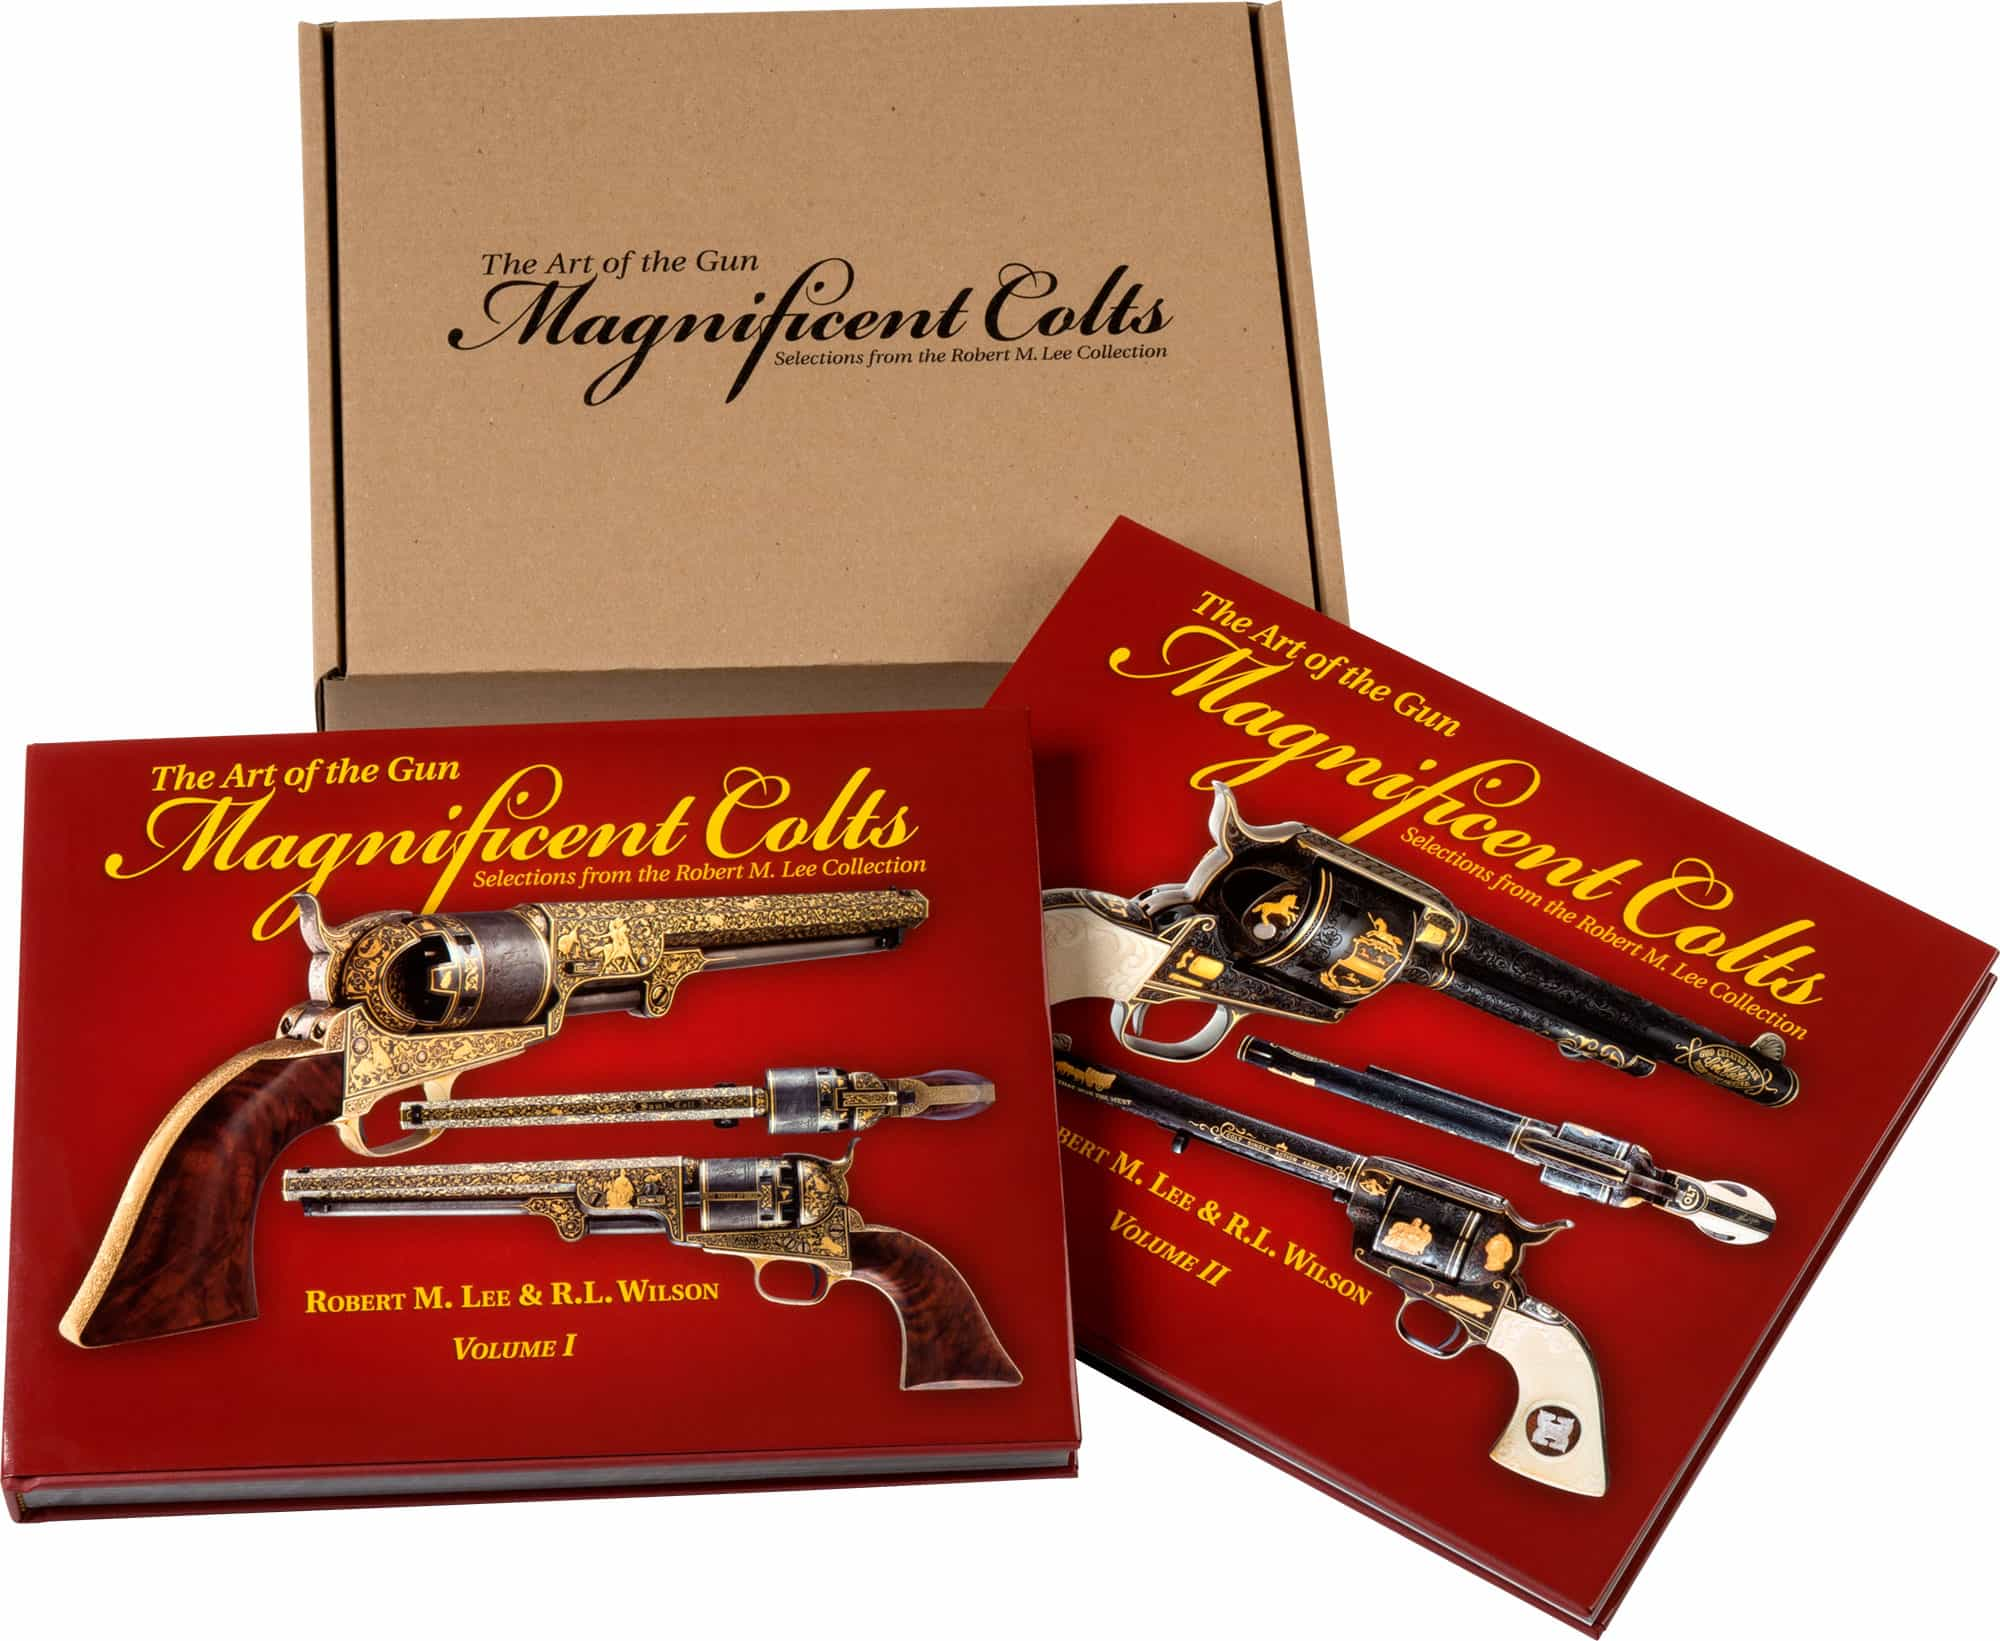 The Art of the Gun: Magnificent Colts: Classic Edition